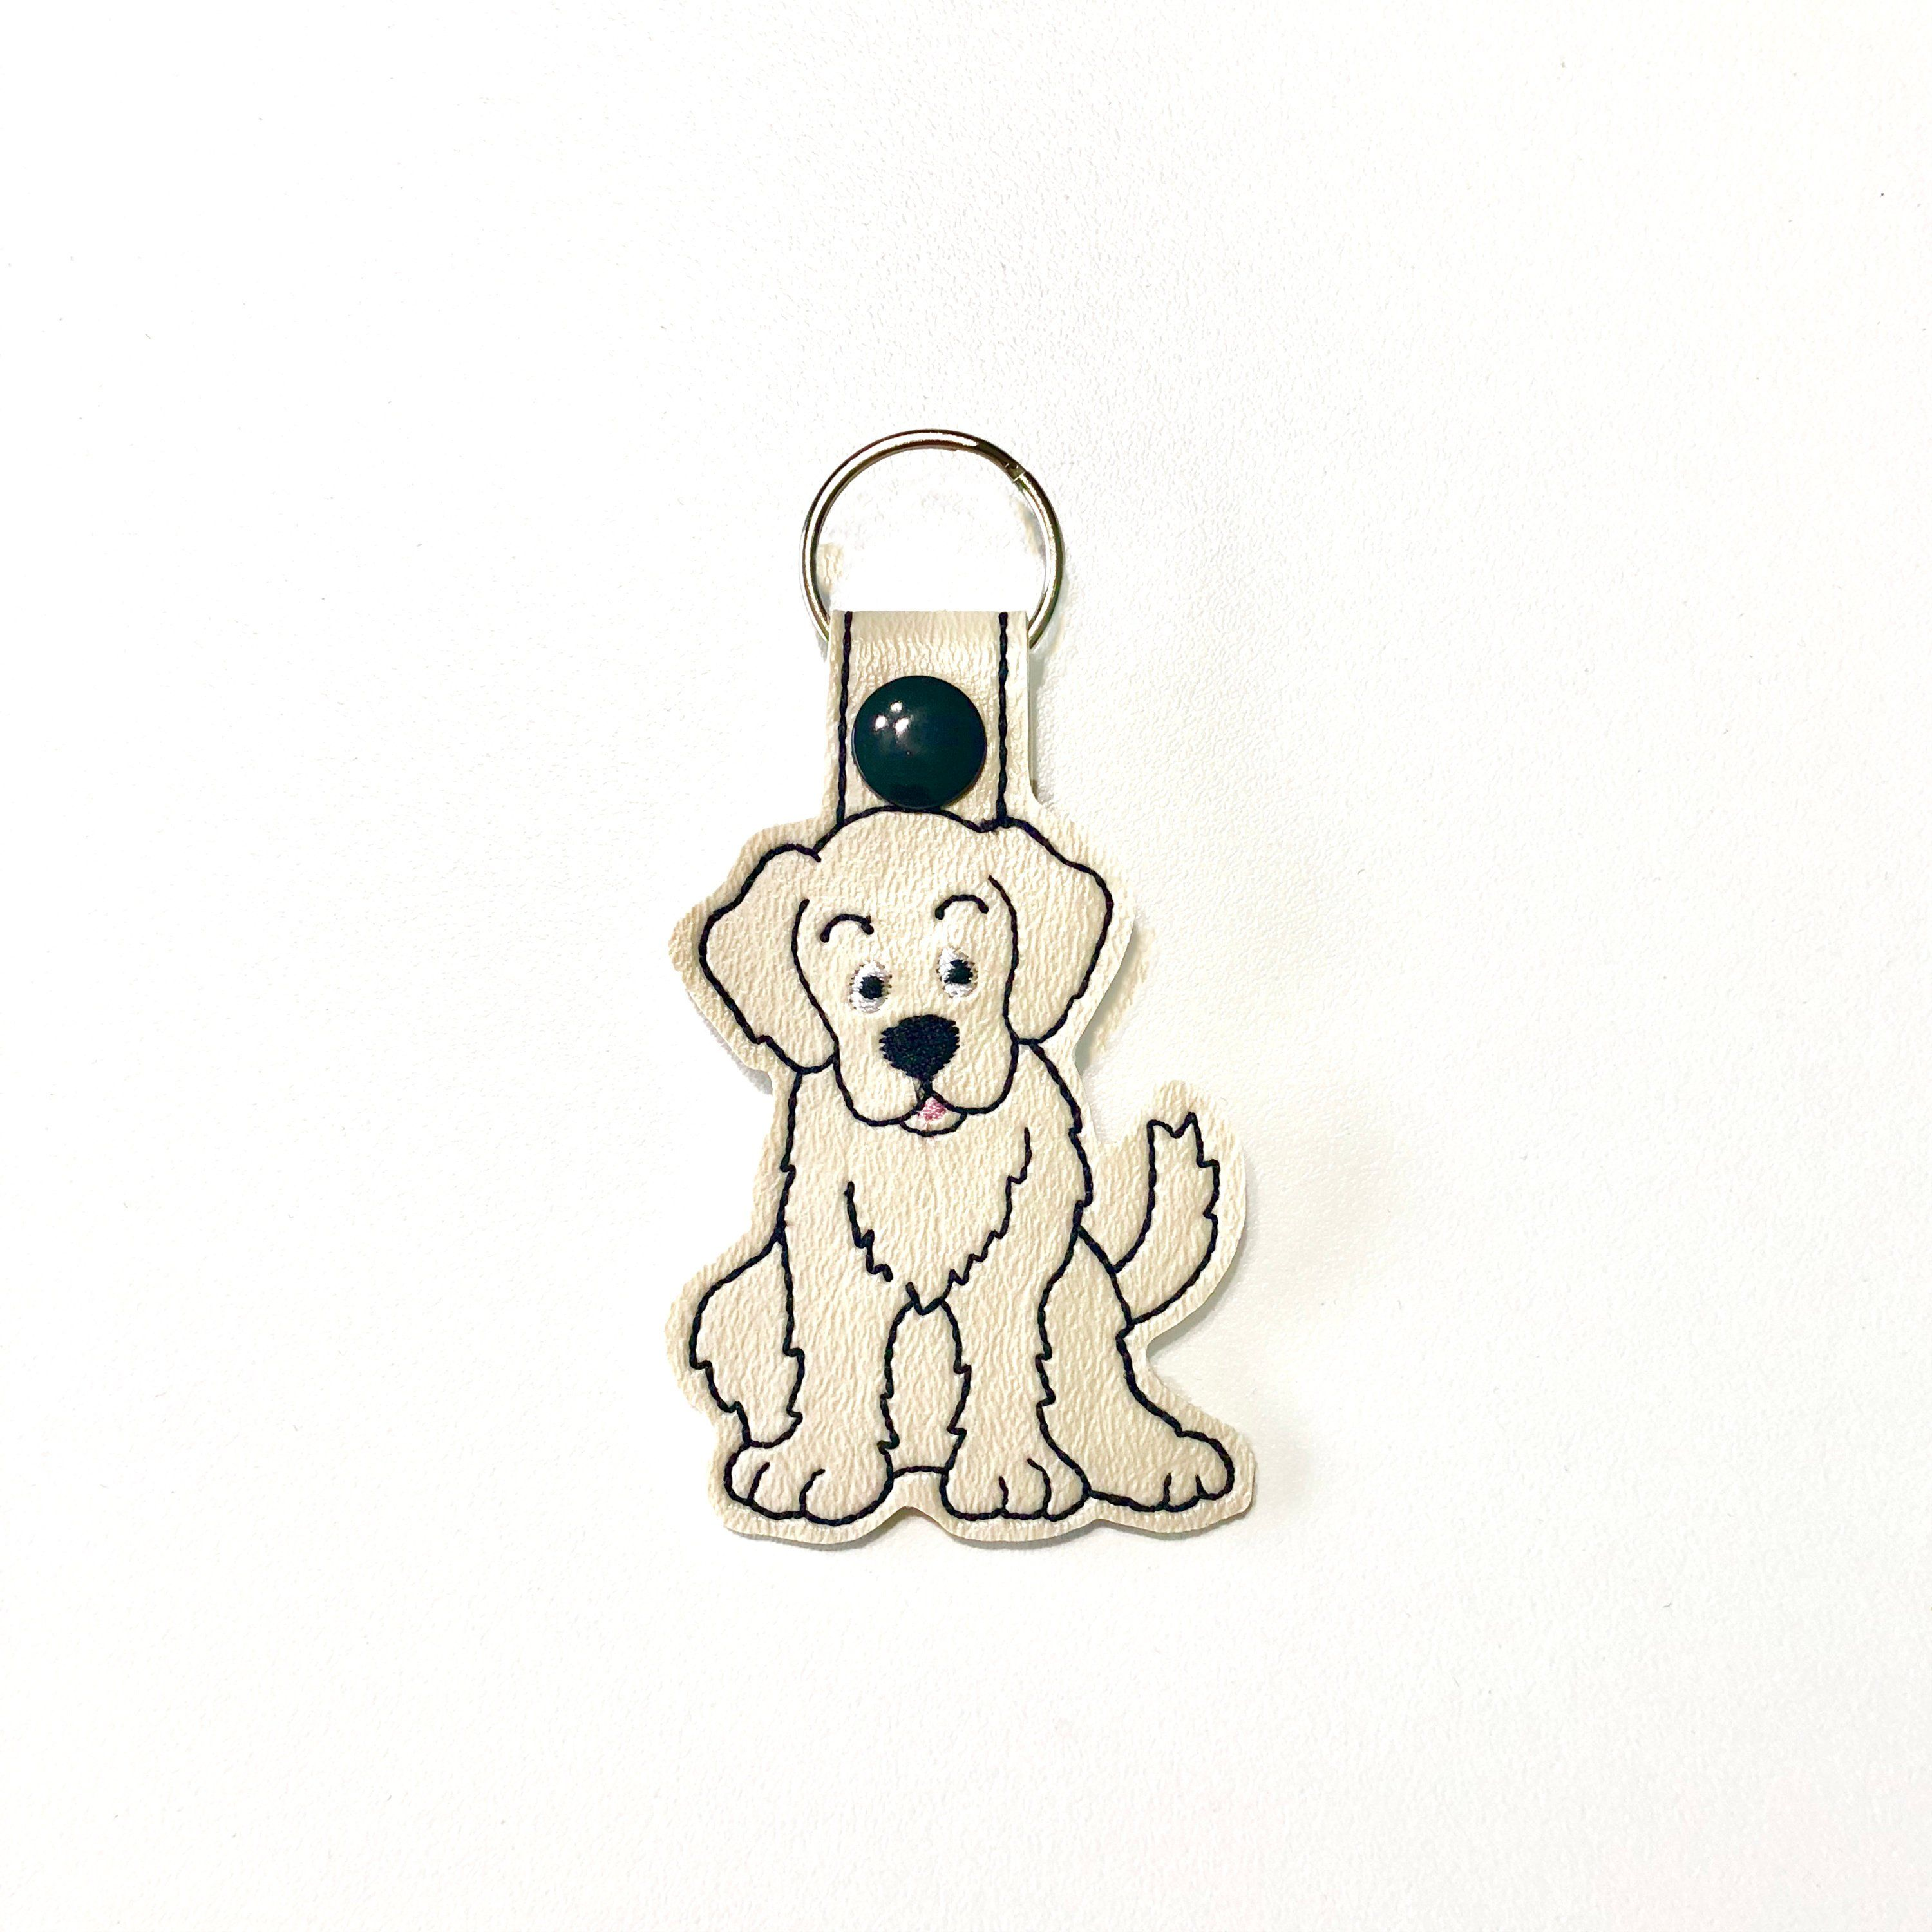 Golden Retriever Key Fob Dog Lover Gift Stocking Stuffer Christmas Gift For Her By Houndstreetboutique On Etsy Dog Lover Gifts Dog Lovers Cat Key